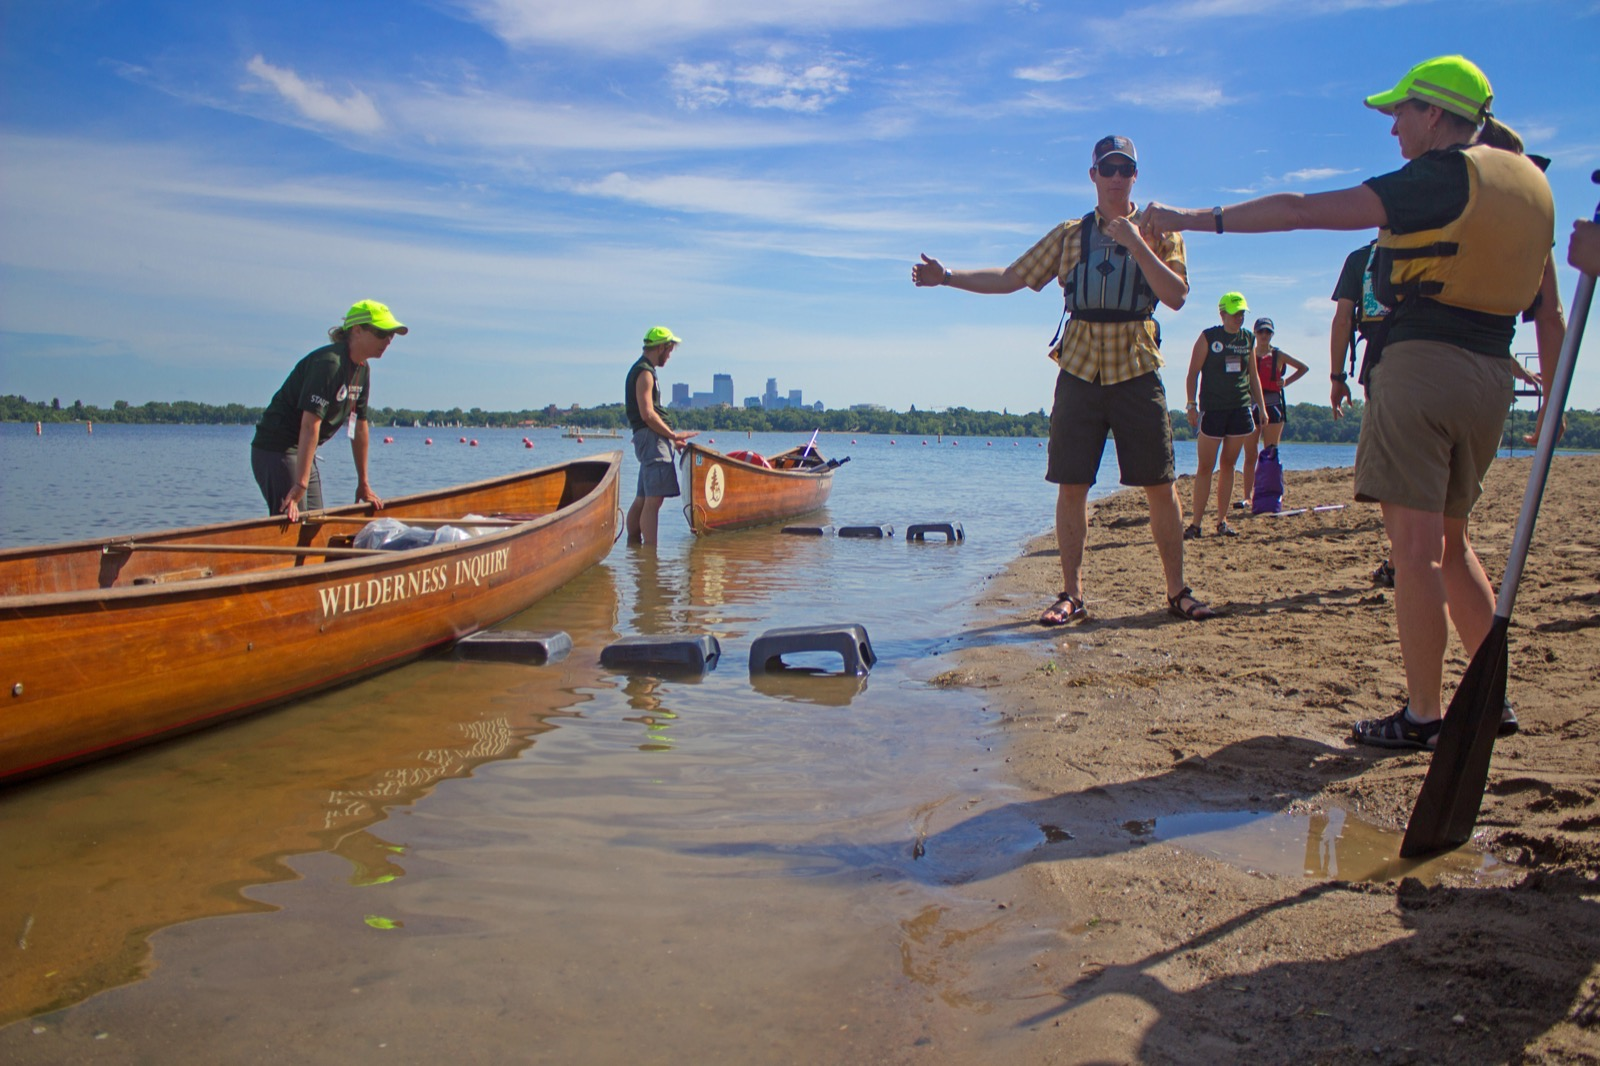 Wilderness Inquiry staff prepare two canoes on the beach for a fun day on the Chain of Lakes.